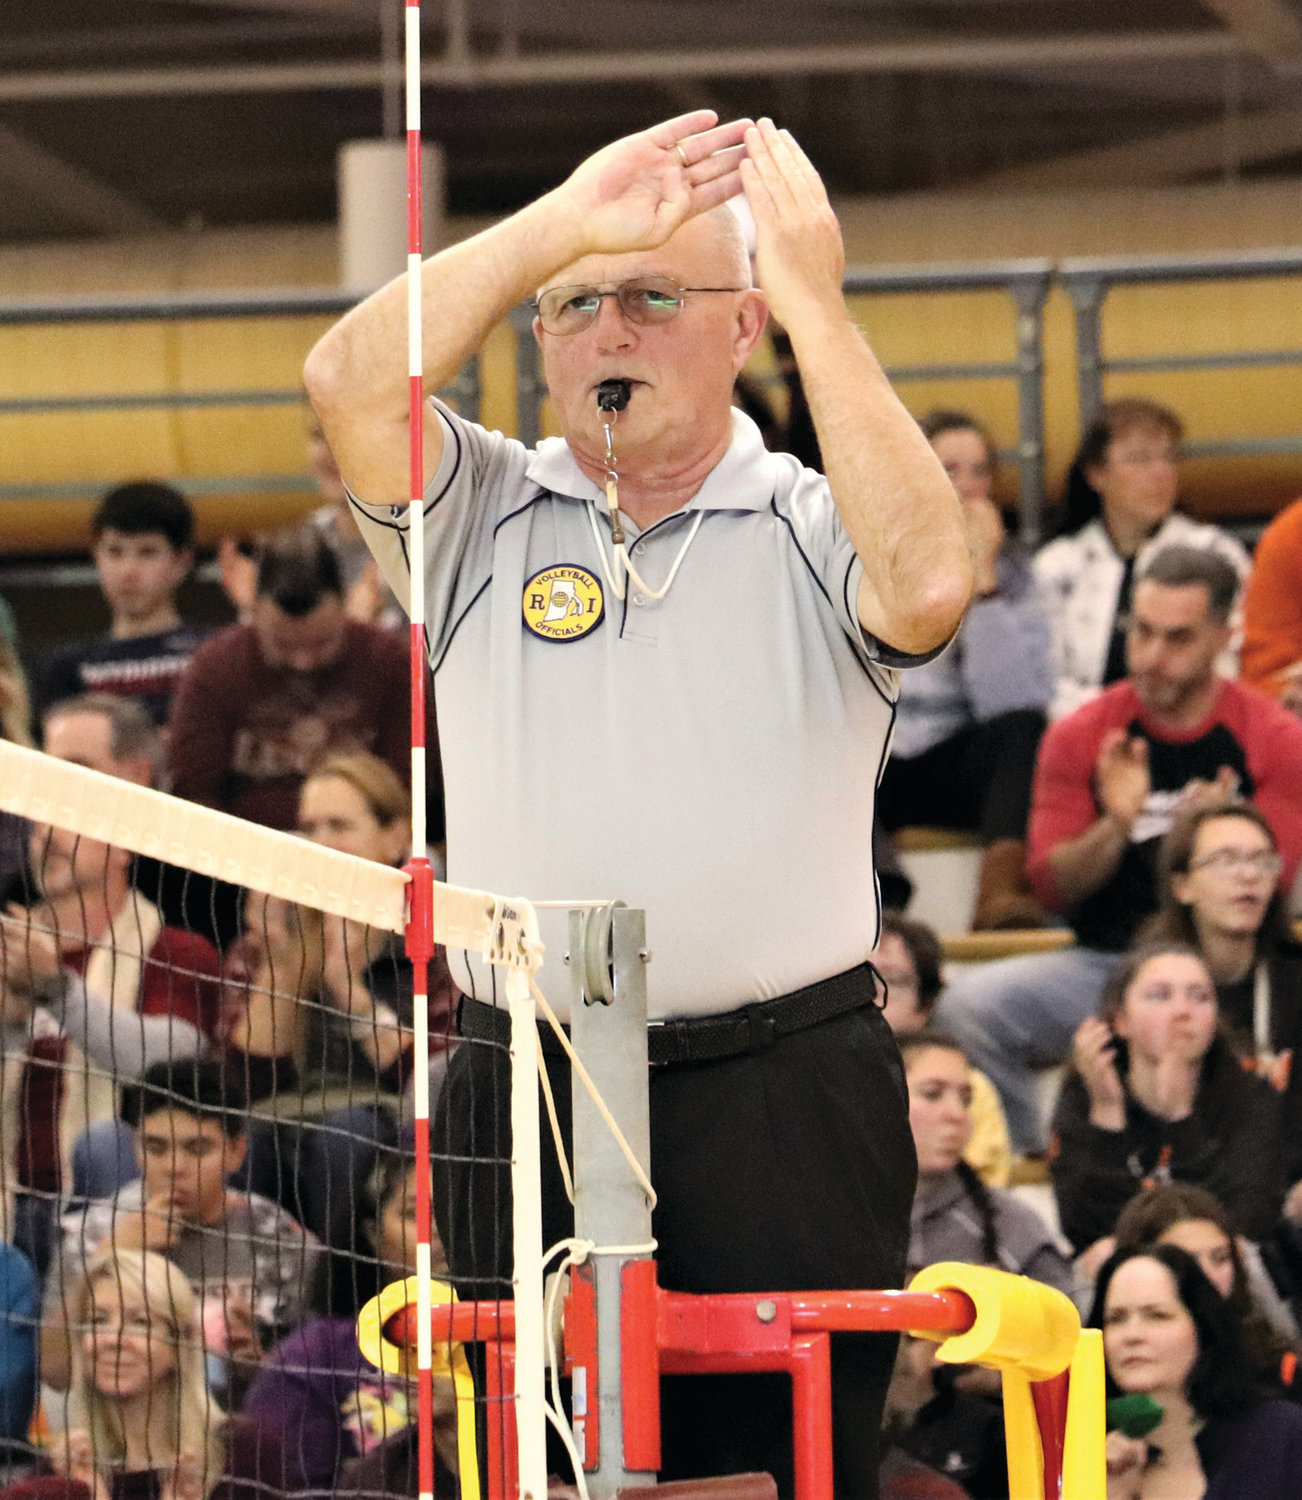 MAKING THE CALL: Ray DeAngelis in a recent match.